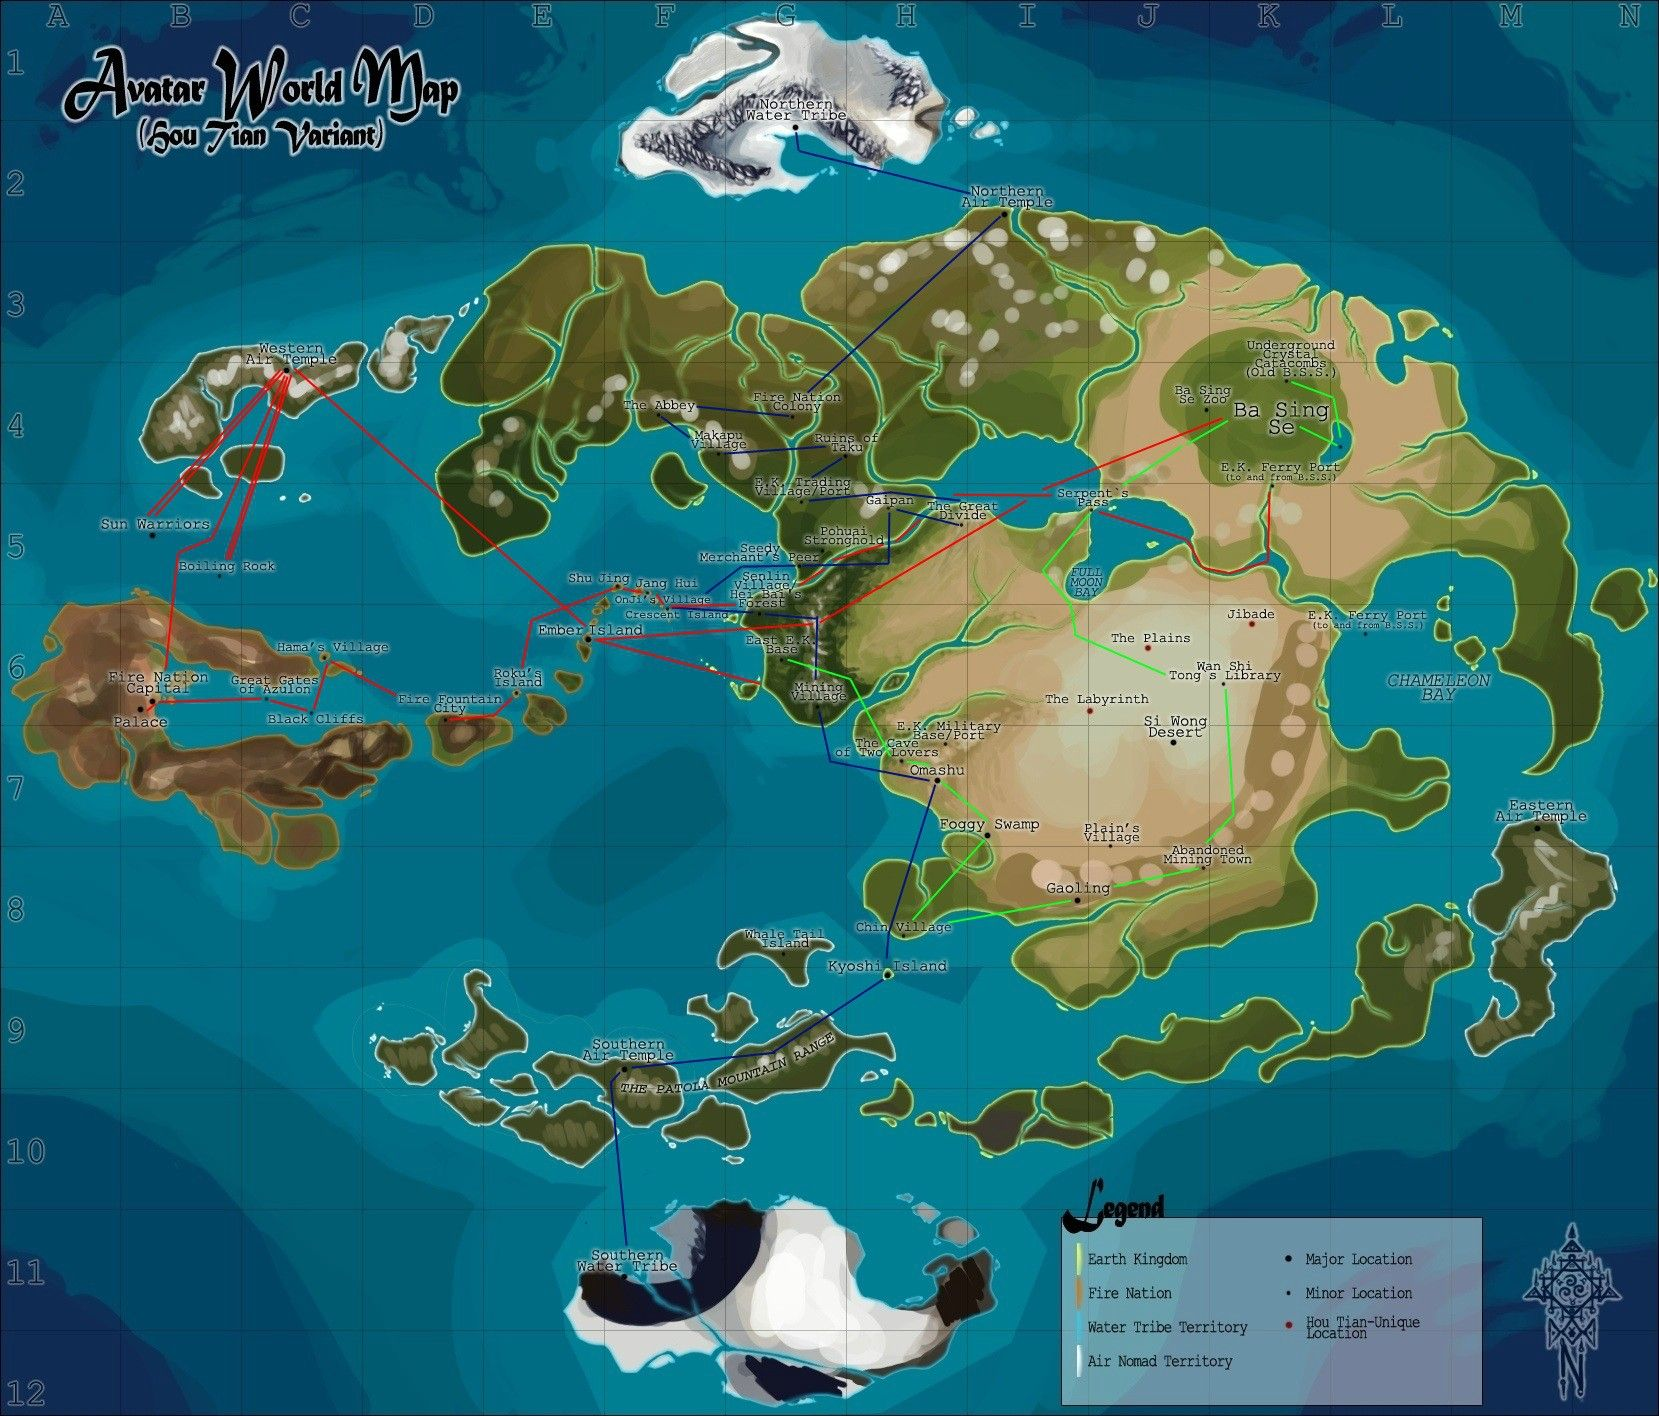 Avatar The Last Airbender World Map Detailed map of the Gaang's adventures. | Avatar world, Avatar the